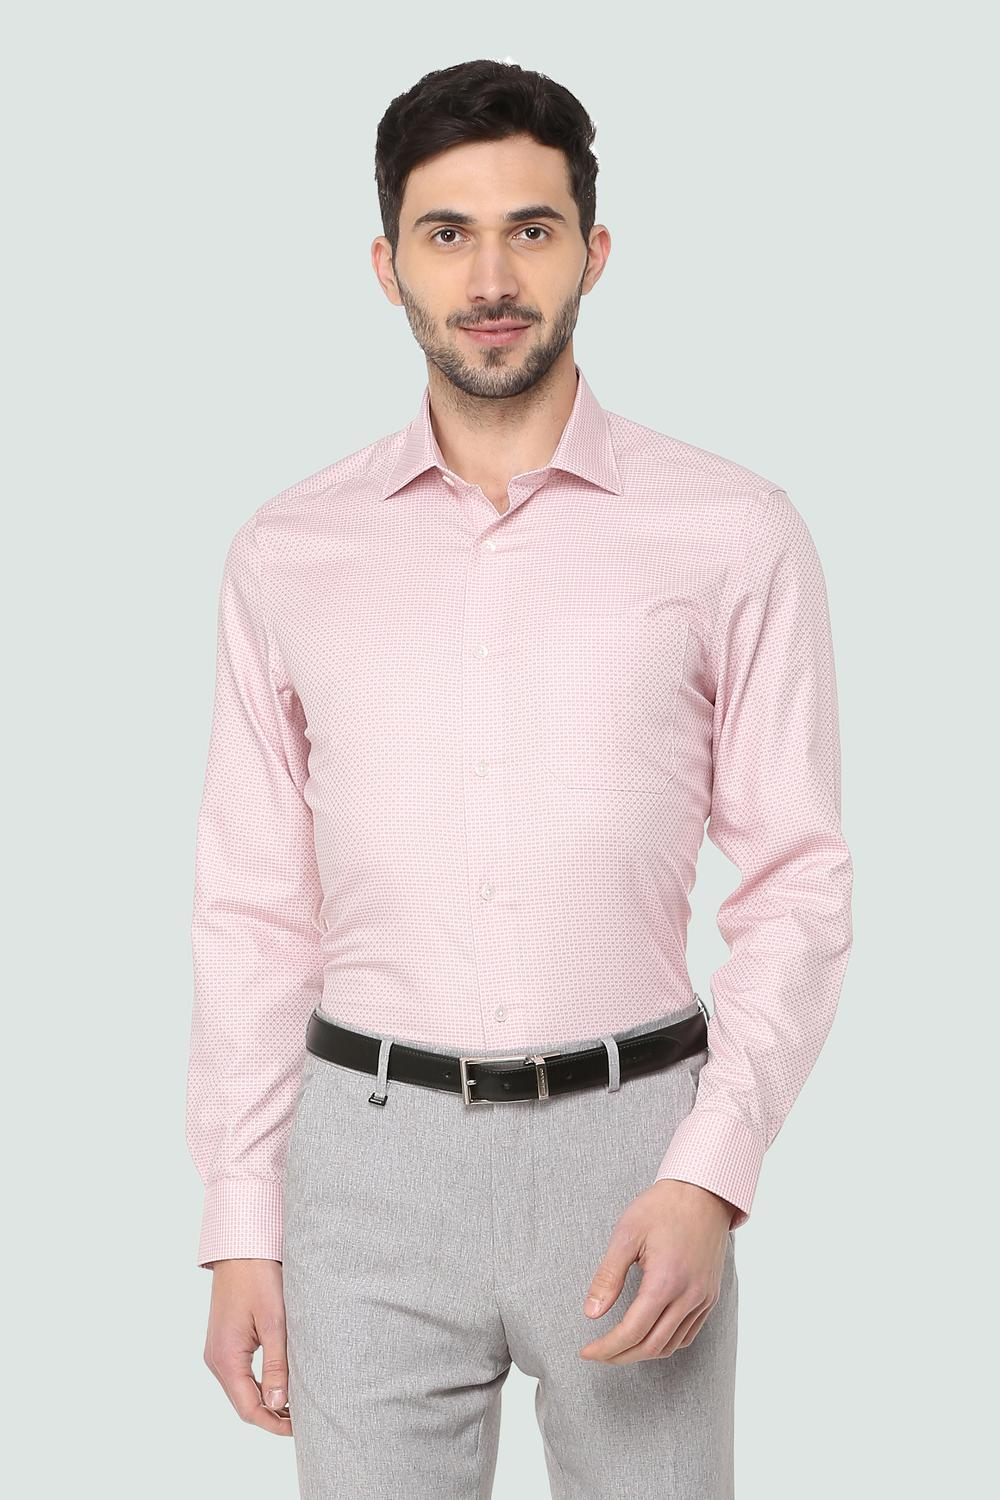 a0d8546ff8caa4 Louis Philippe Shirts, Louis Philippe Pink Shirt for Men at Louisphilippe .com